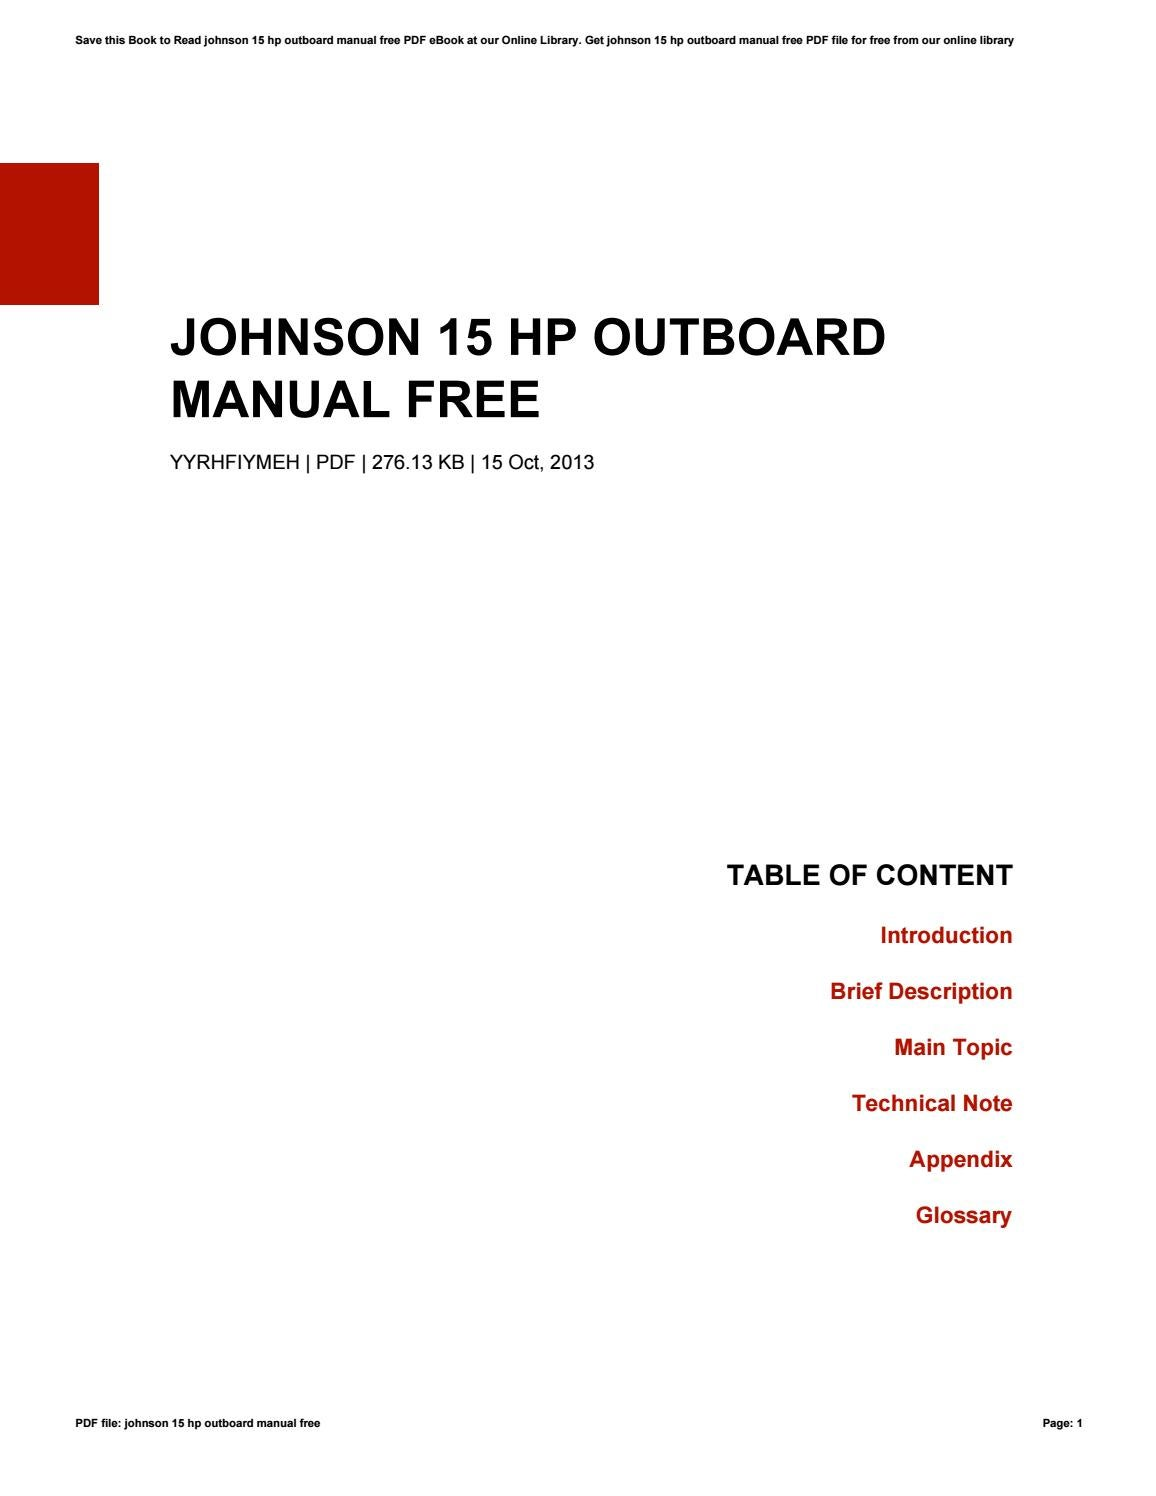 Johnson outboard Manual Online free